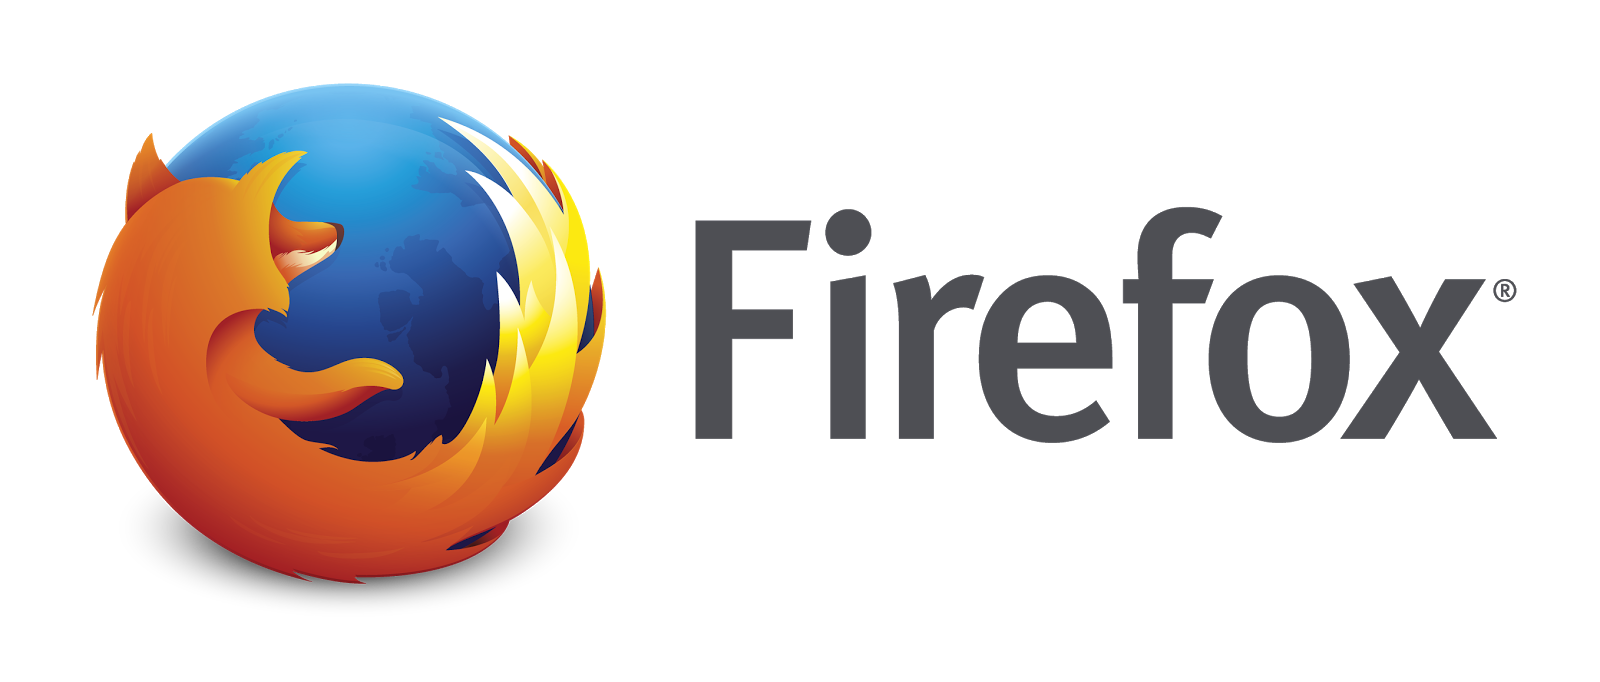 Codefreax: Install/Update mozilla firefox browser on Linux